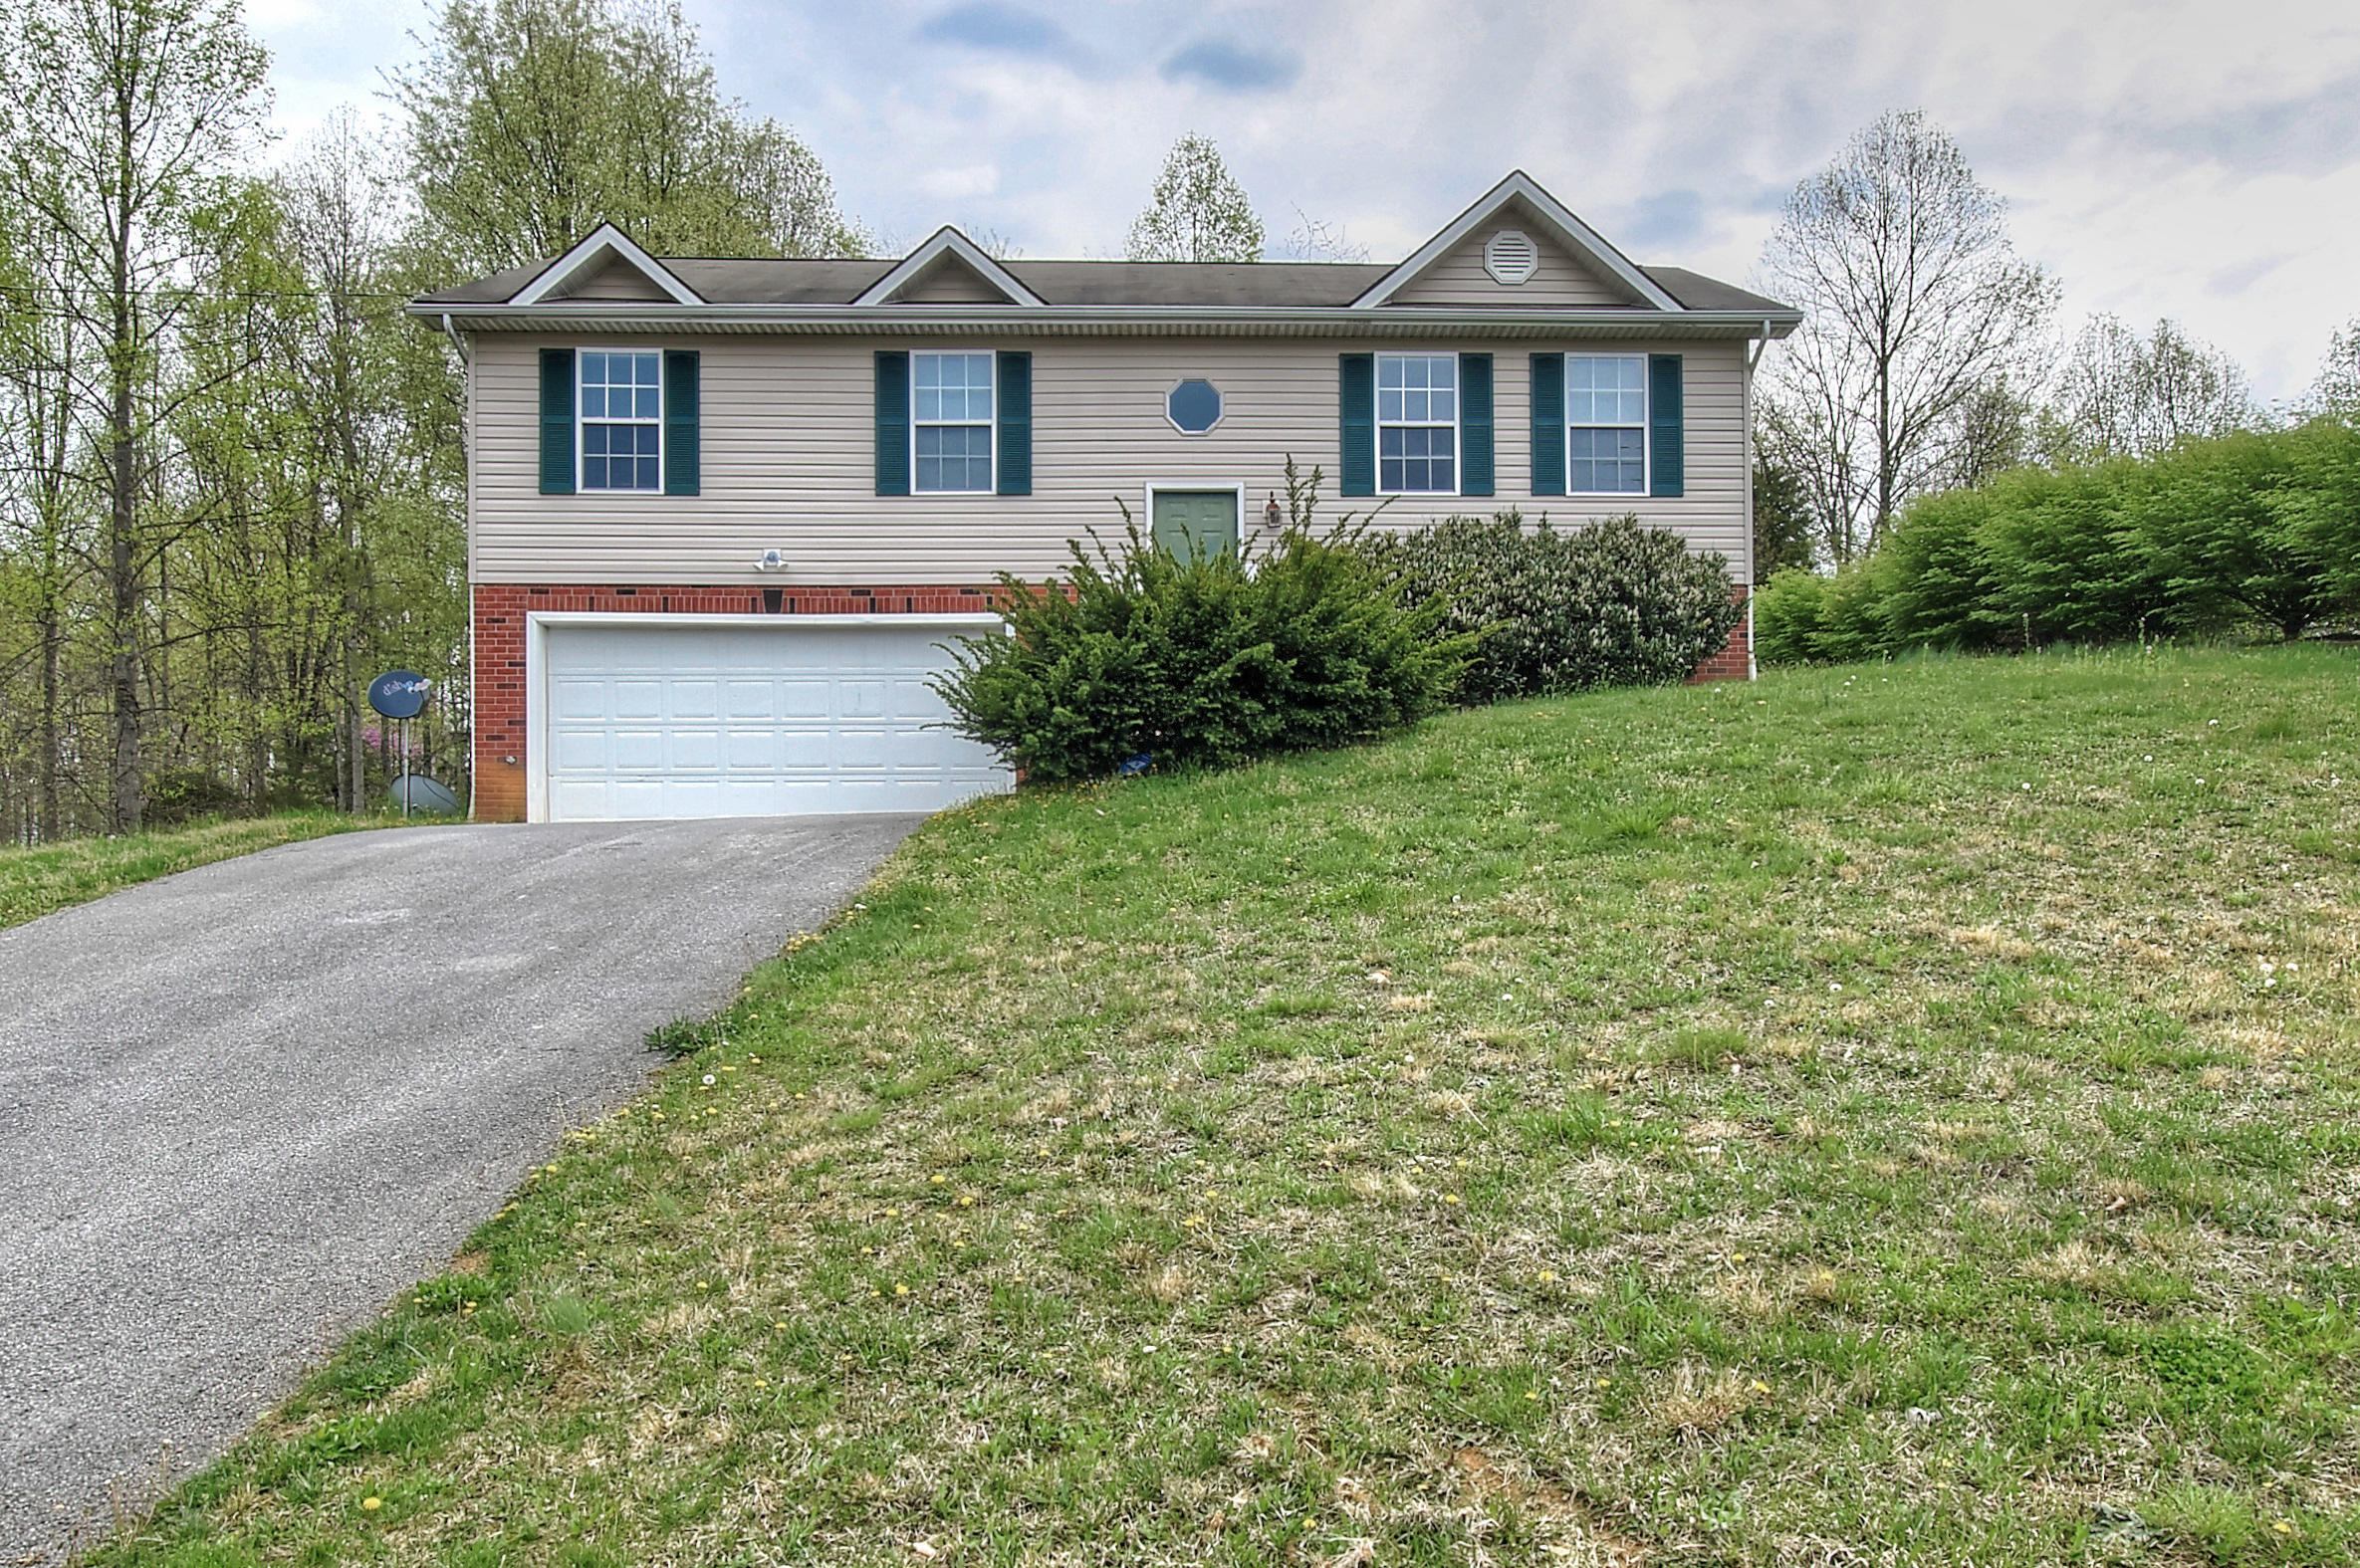 104 Halfway Court, Johnson City, Tennessee 37604, 3 Bedrooms Bedrooms, ,2 BathroomsBathrooms,Single Family,For Sale,104 Halfway Court,9921072